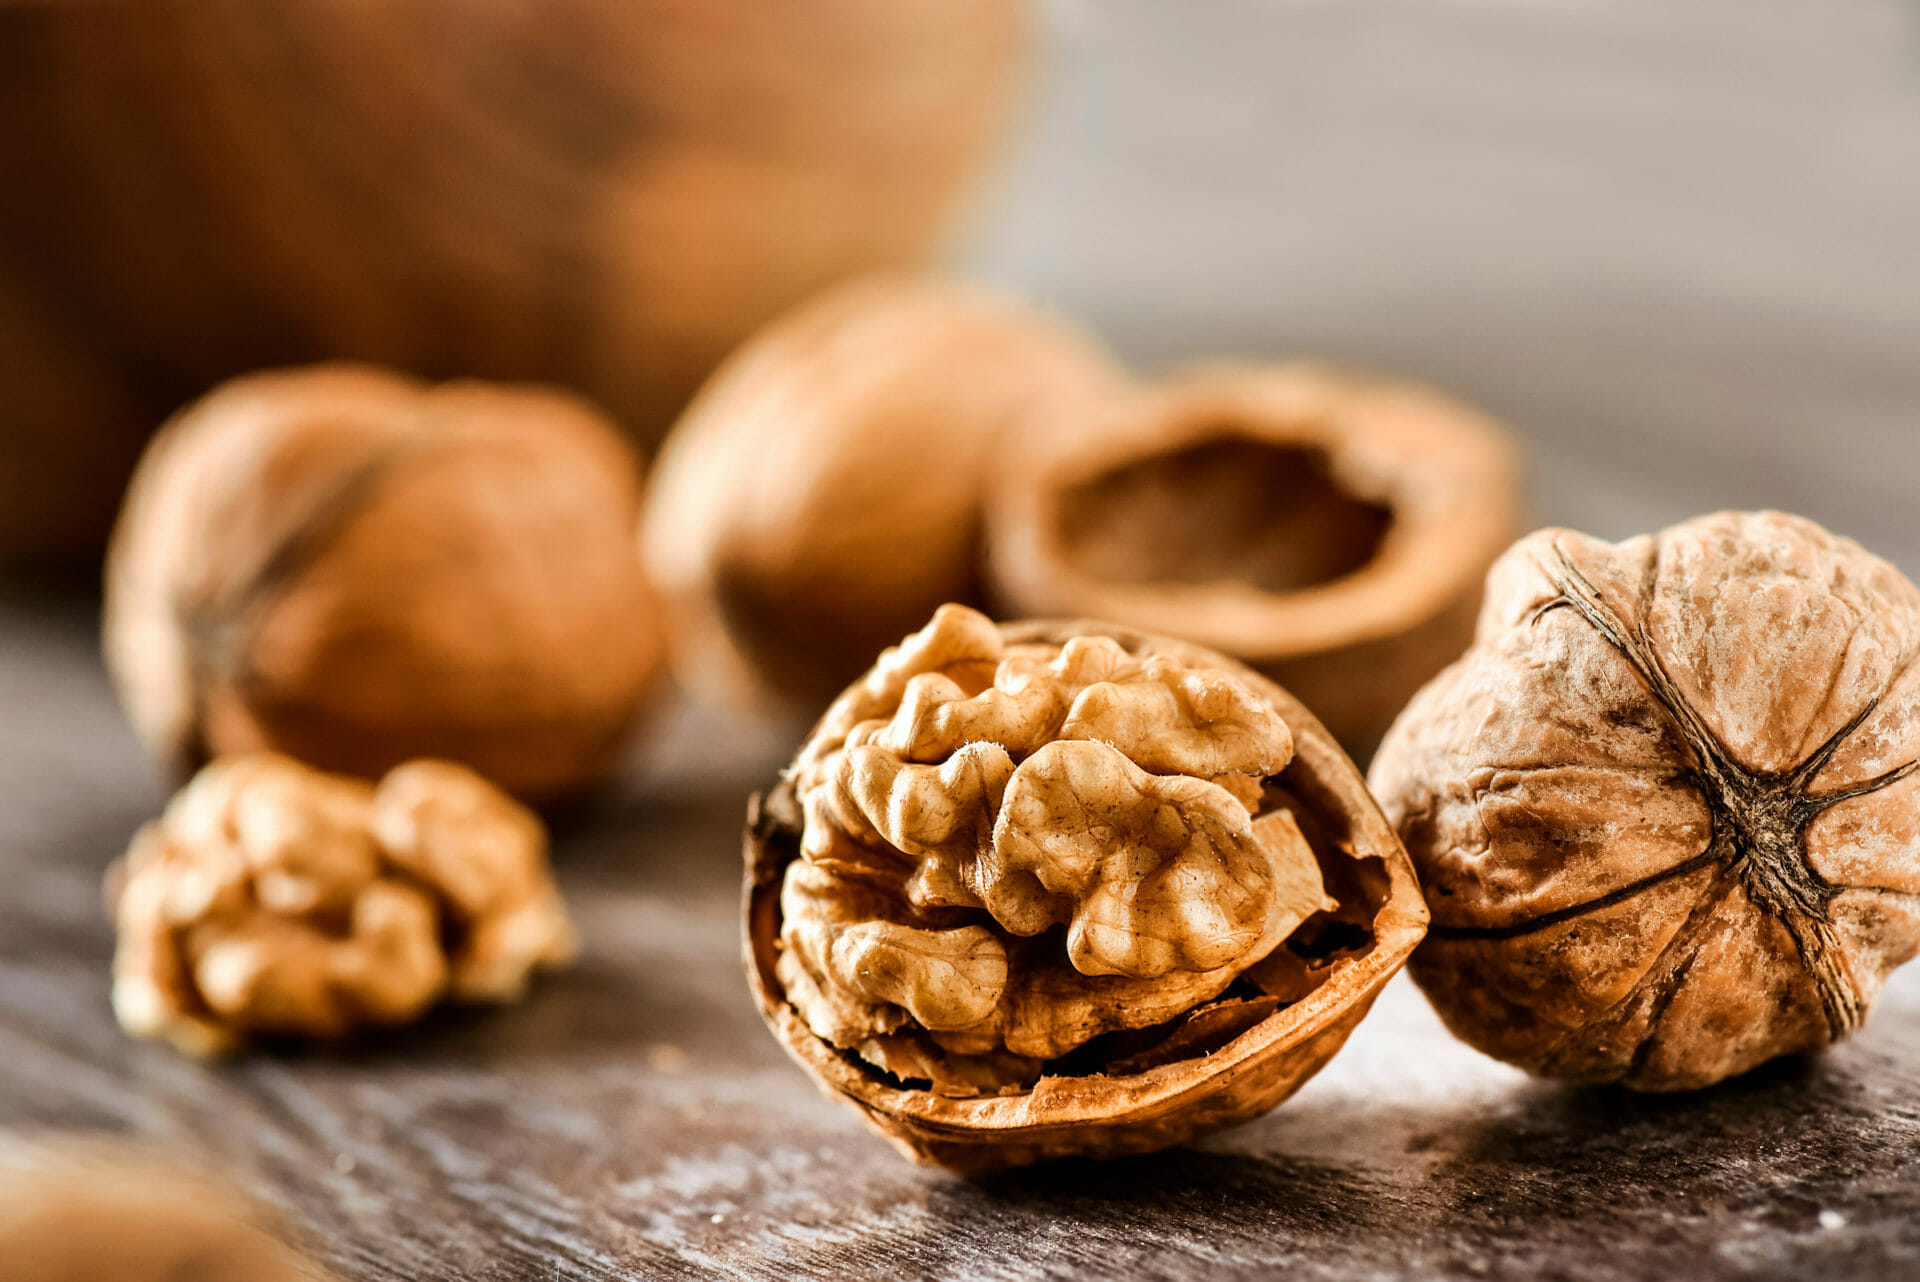 Walnuts are relatively high in omega 6